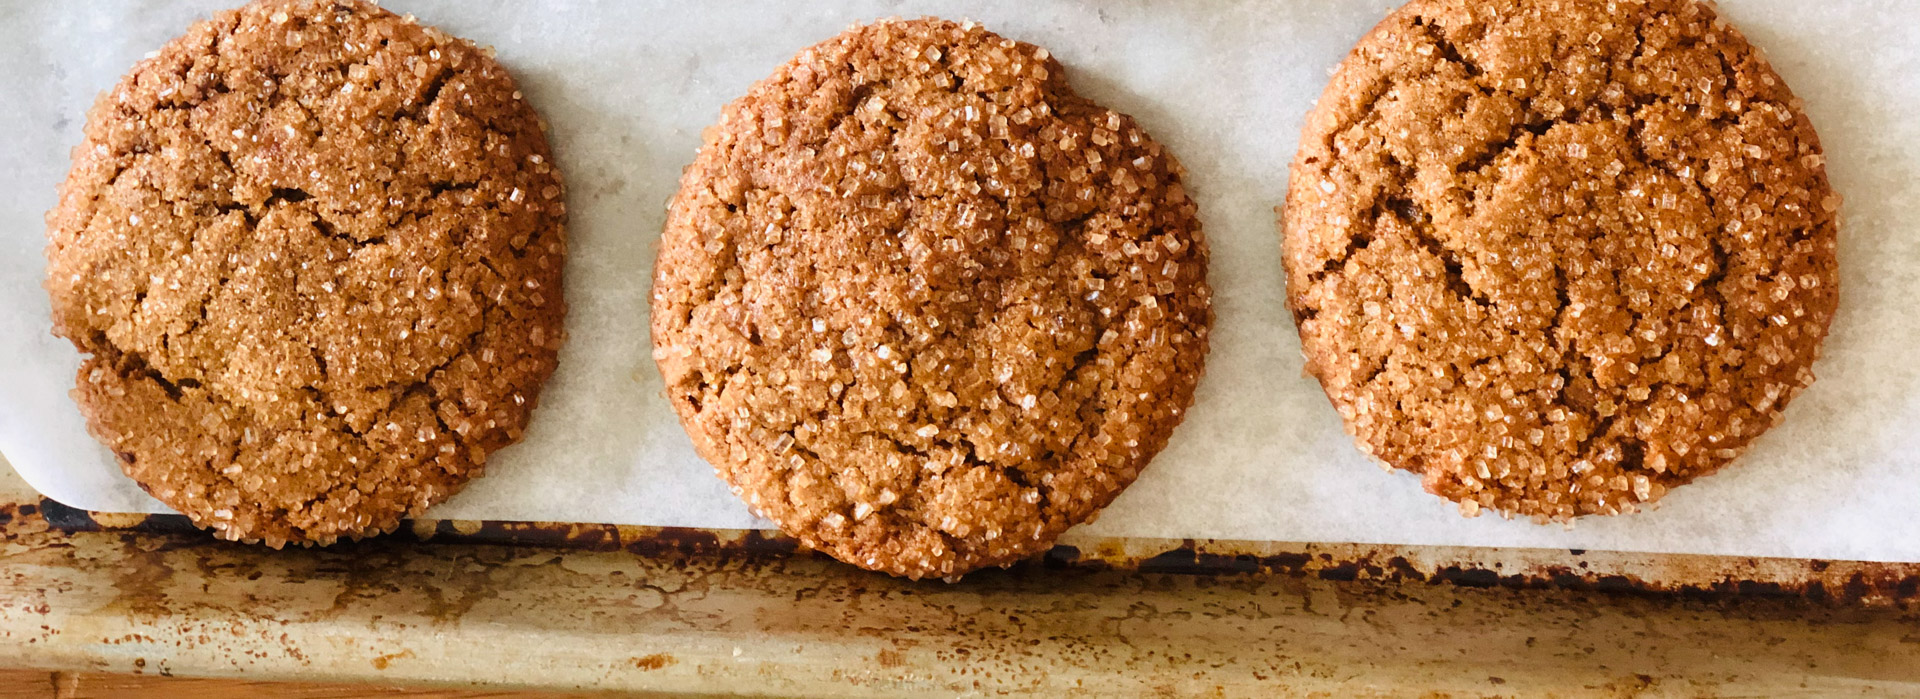 <p>Ginger spice comes through in these chewy vegan cookies made with dried plum puree, which takes the place of butter and eggs.</p>